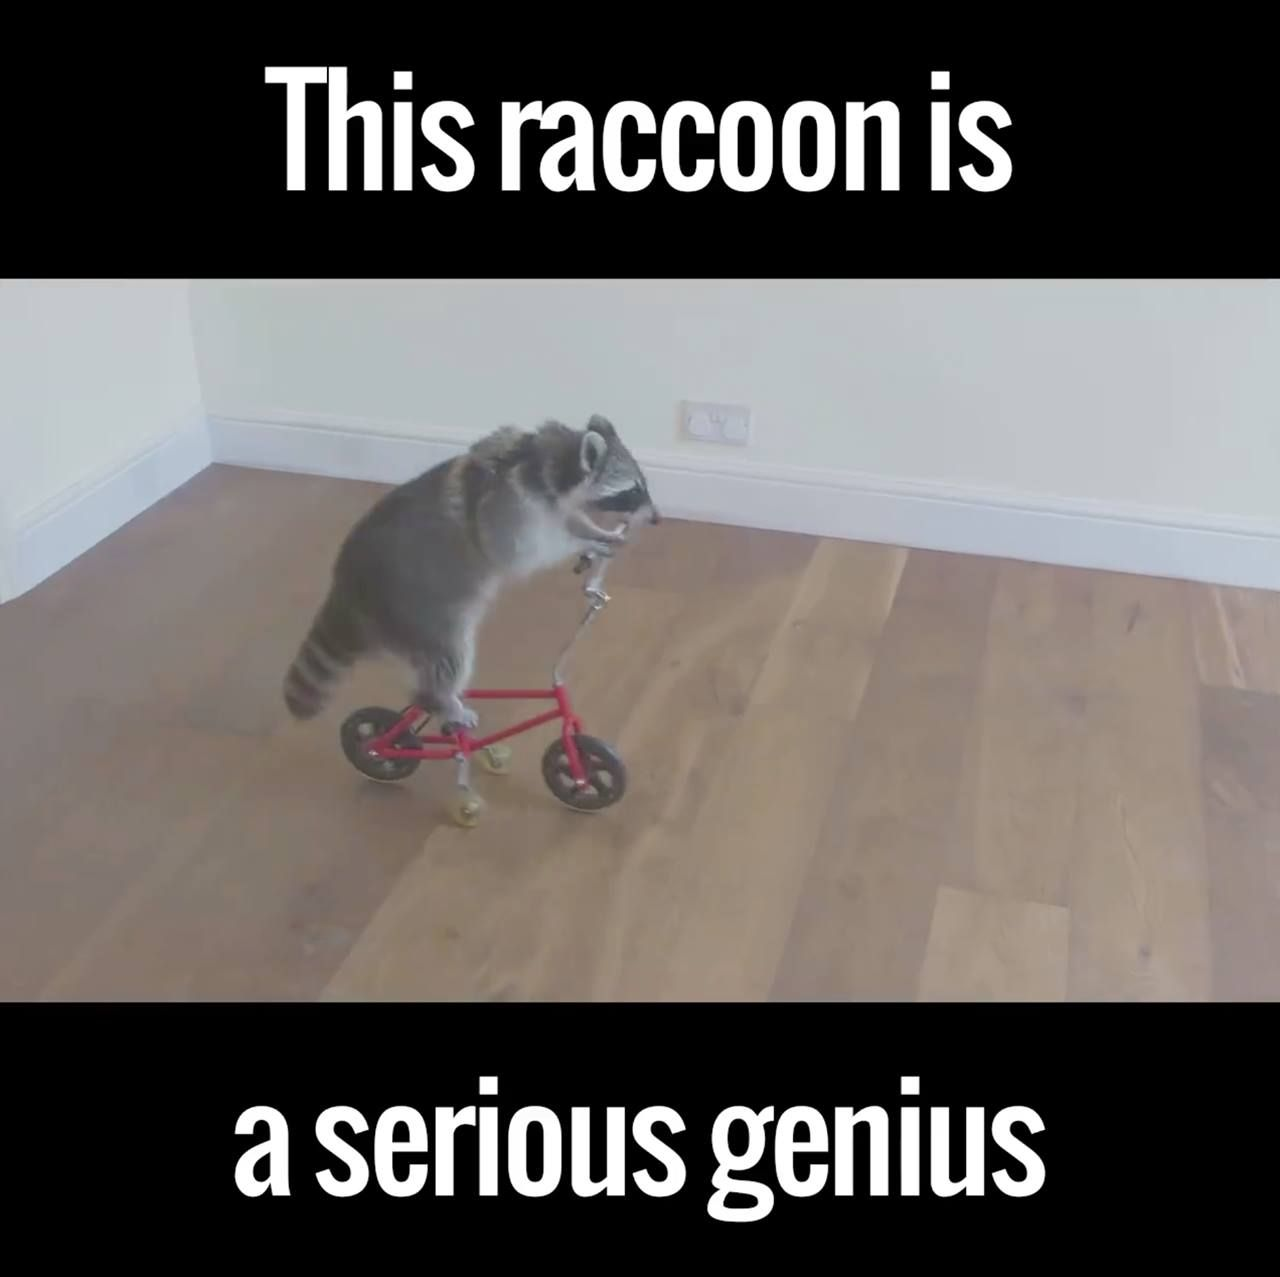 I never knew I wanted a raccoon until now. This guy is a genius